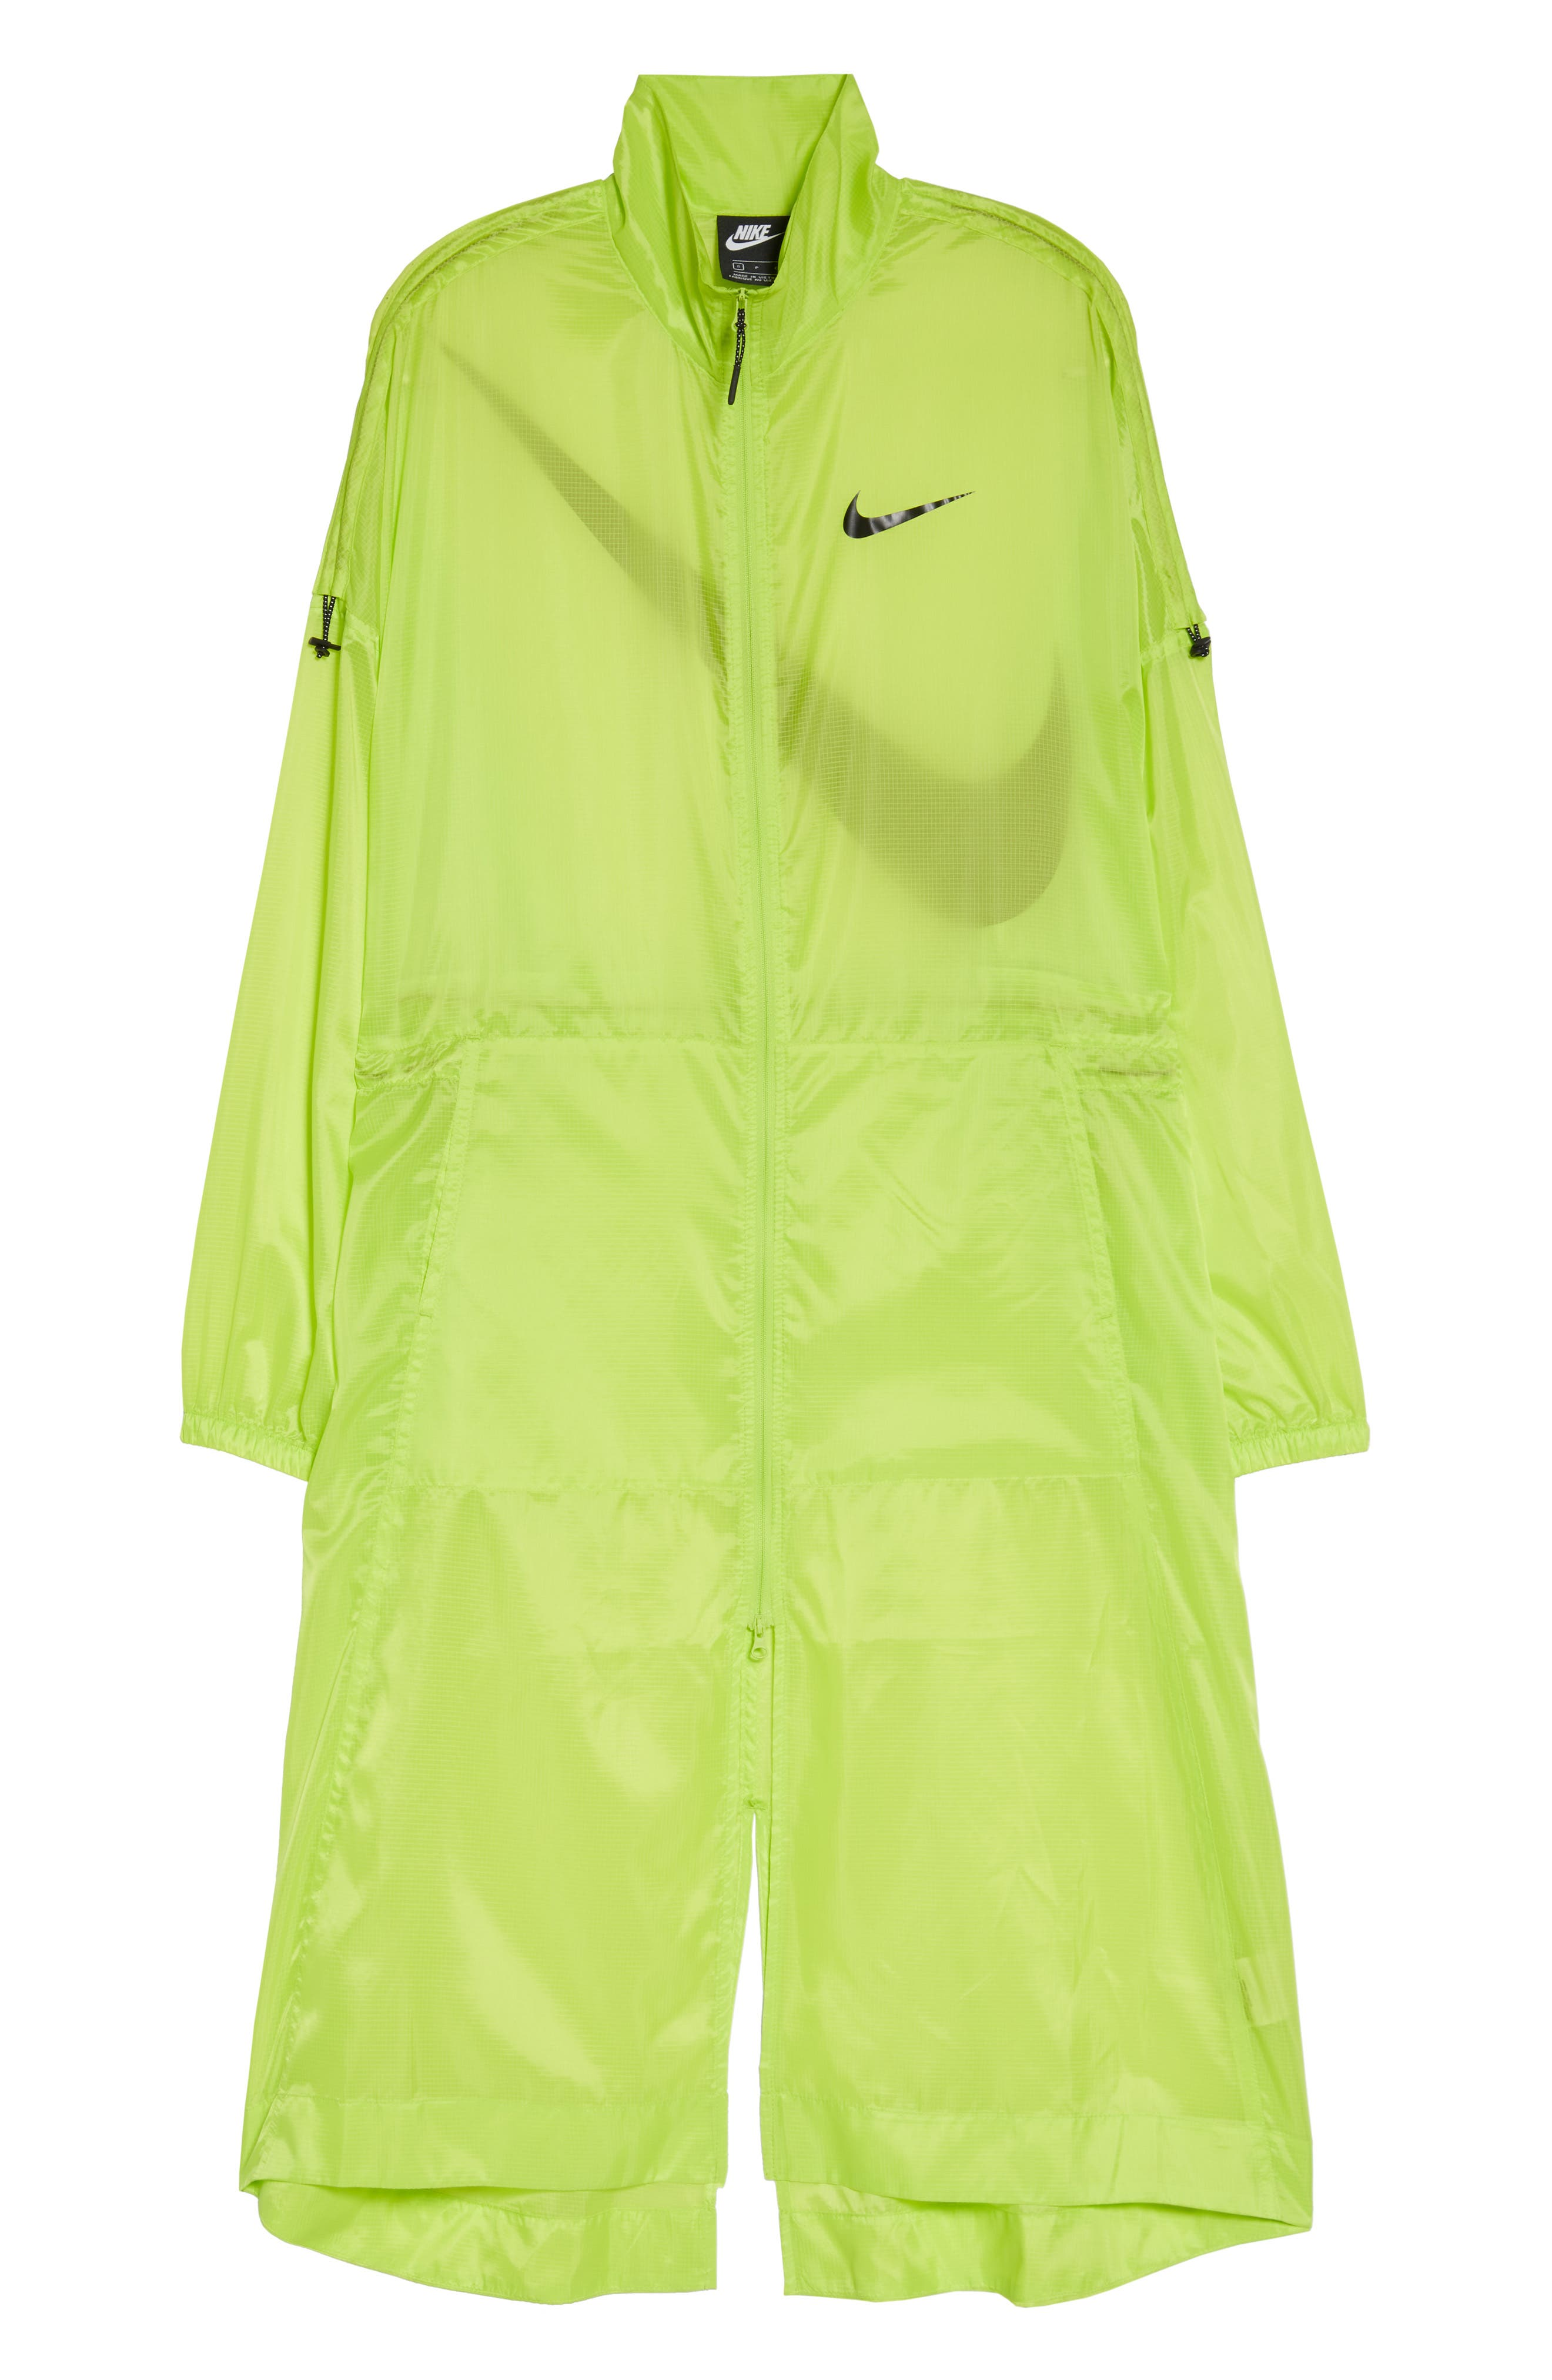 NIKE, Sportswear Women's Woven Jacket, Alternate thumbnail 6, color, CYBER/ BLACK